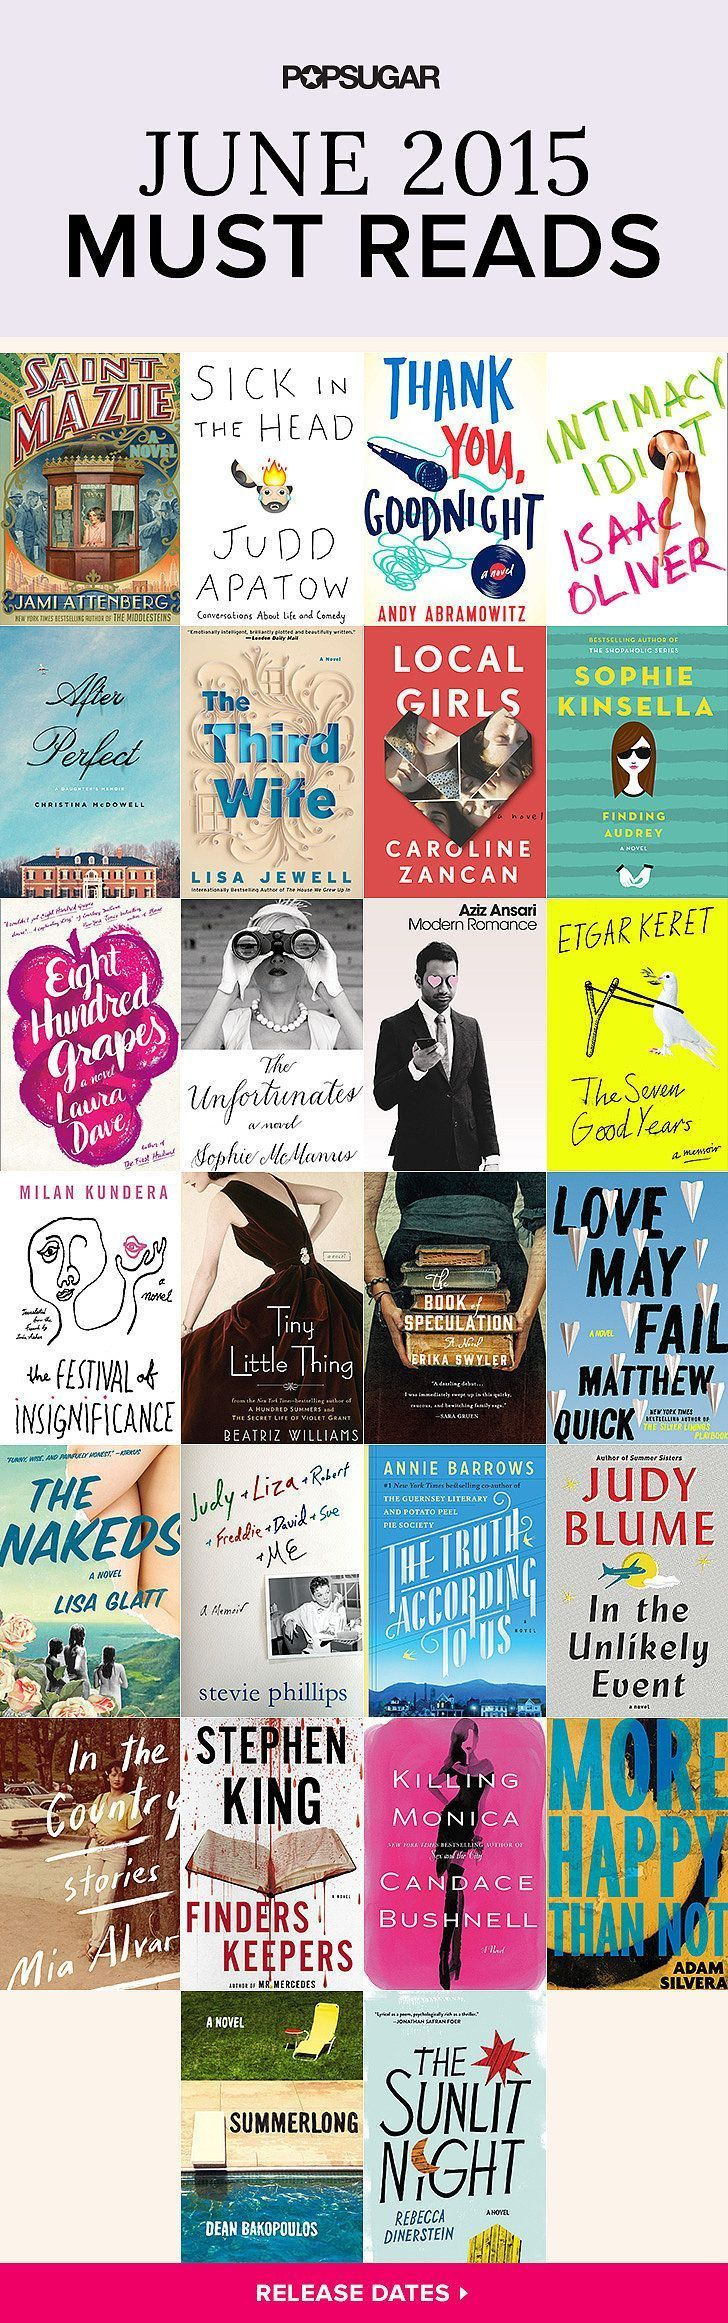 If You're Looking For Some Brandnew Books To Add To Your Summer